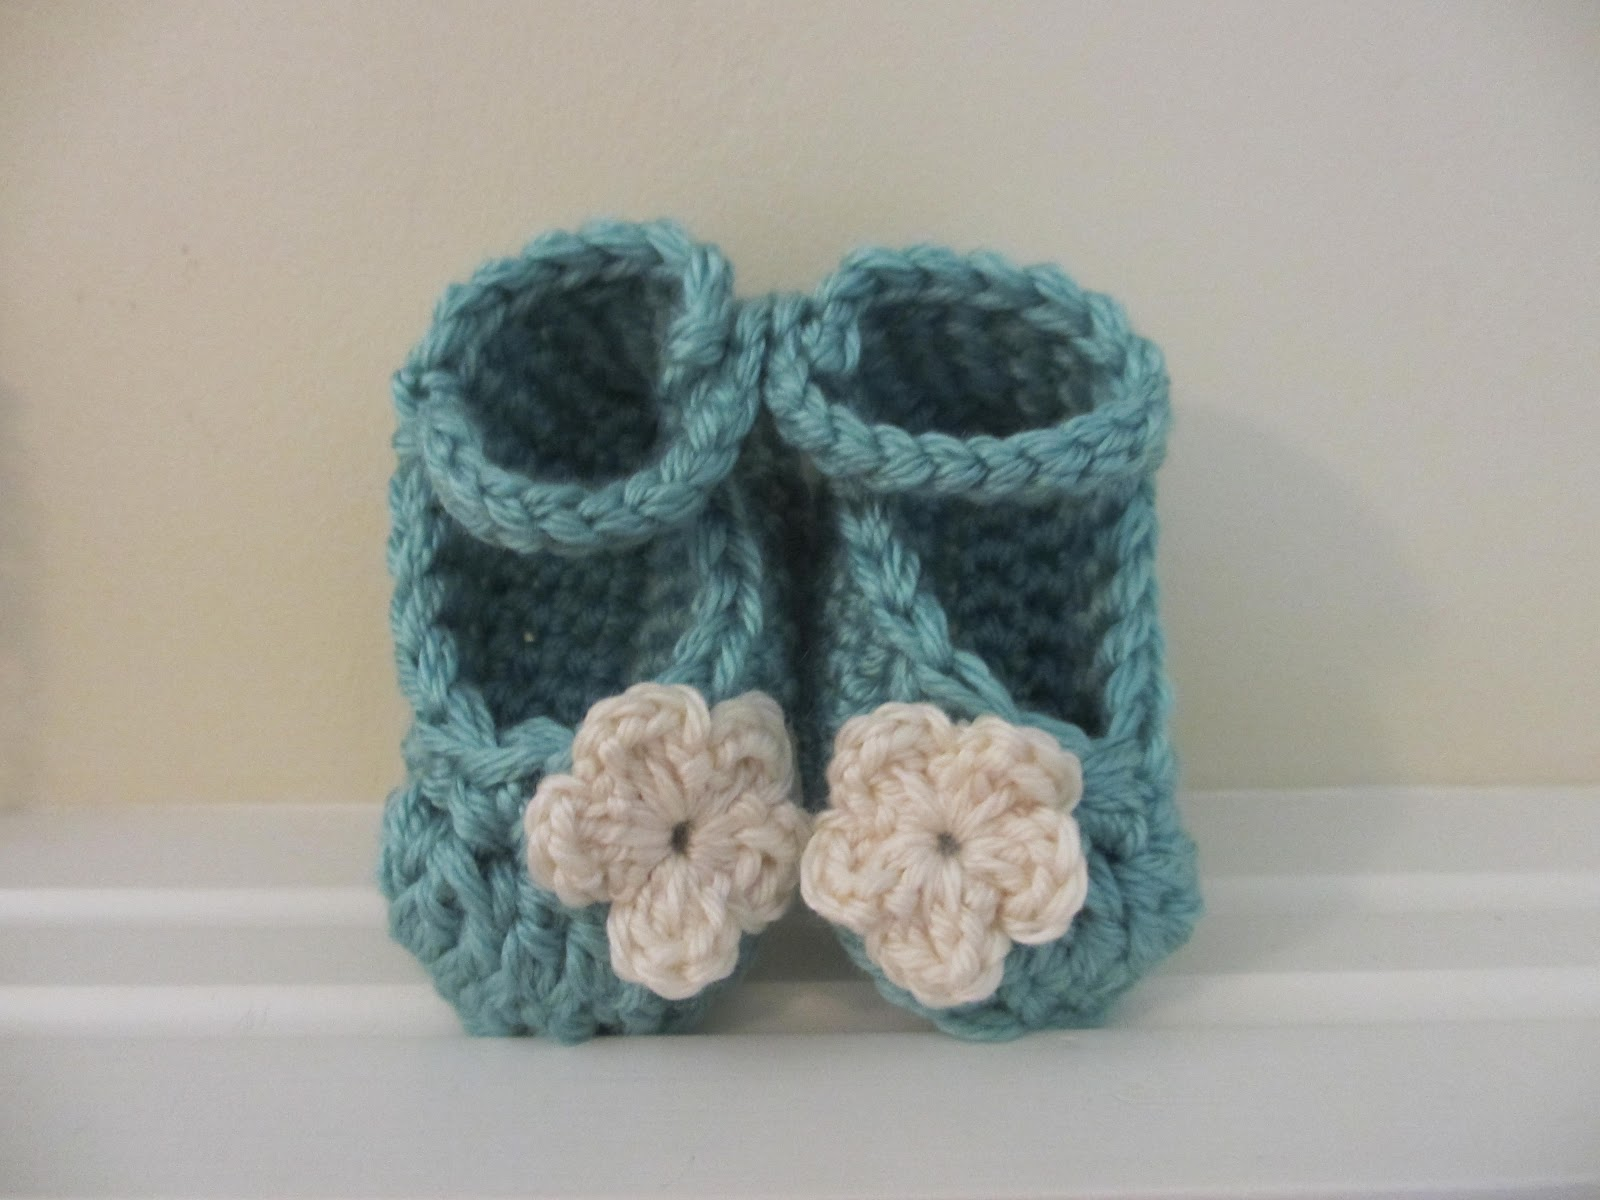 Free Crochet Patterns With Baby Yarn : Jays Boutique Blog: FREE PATTERN: Chunky Yarn Baby Booties